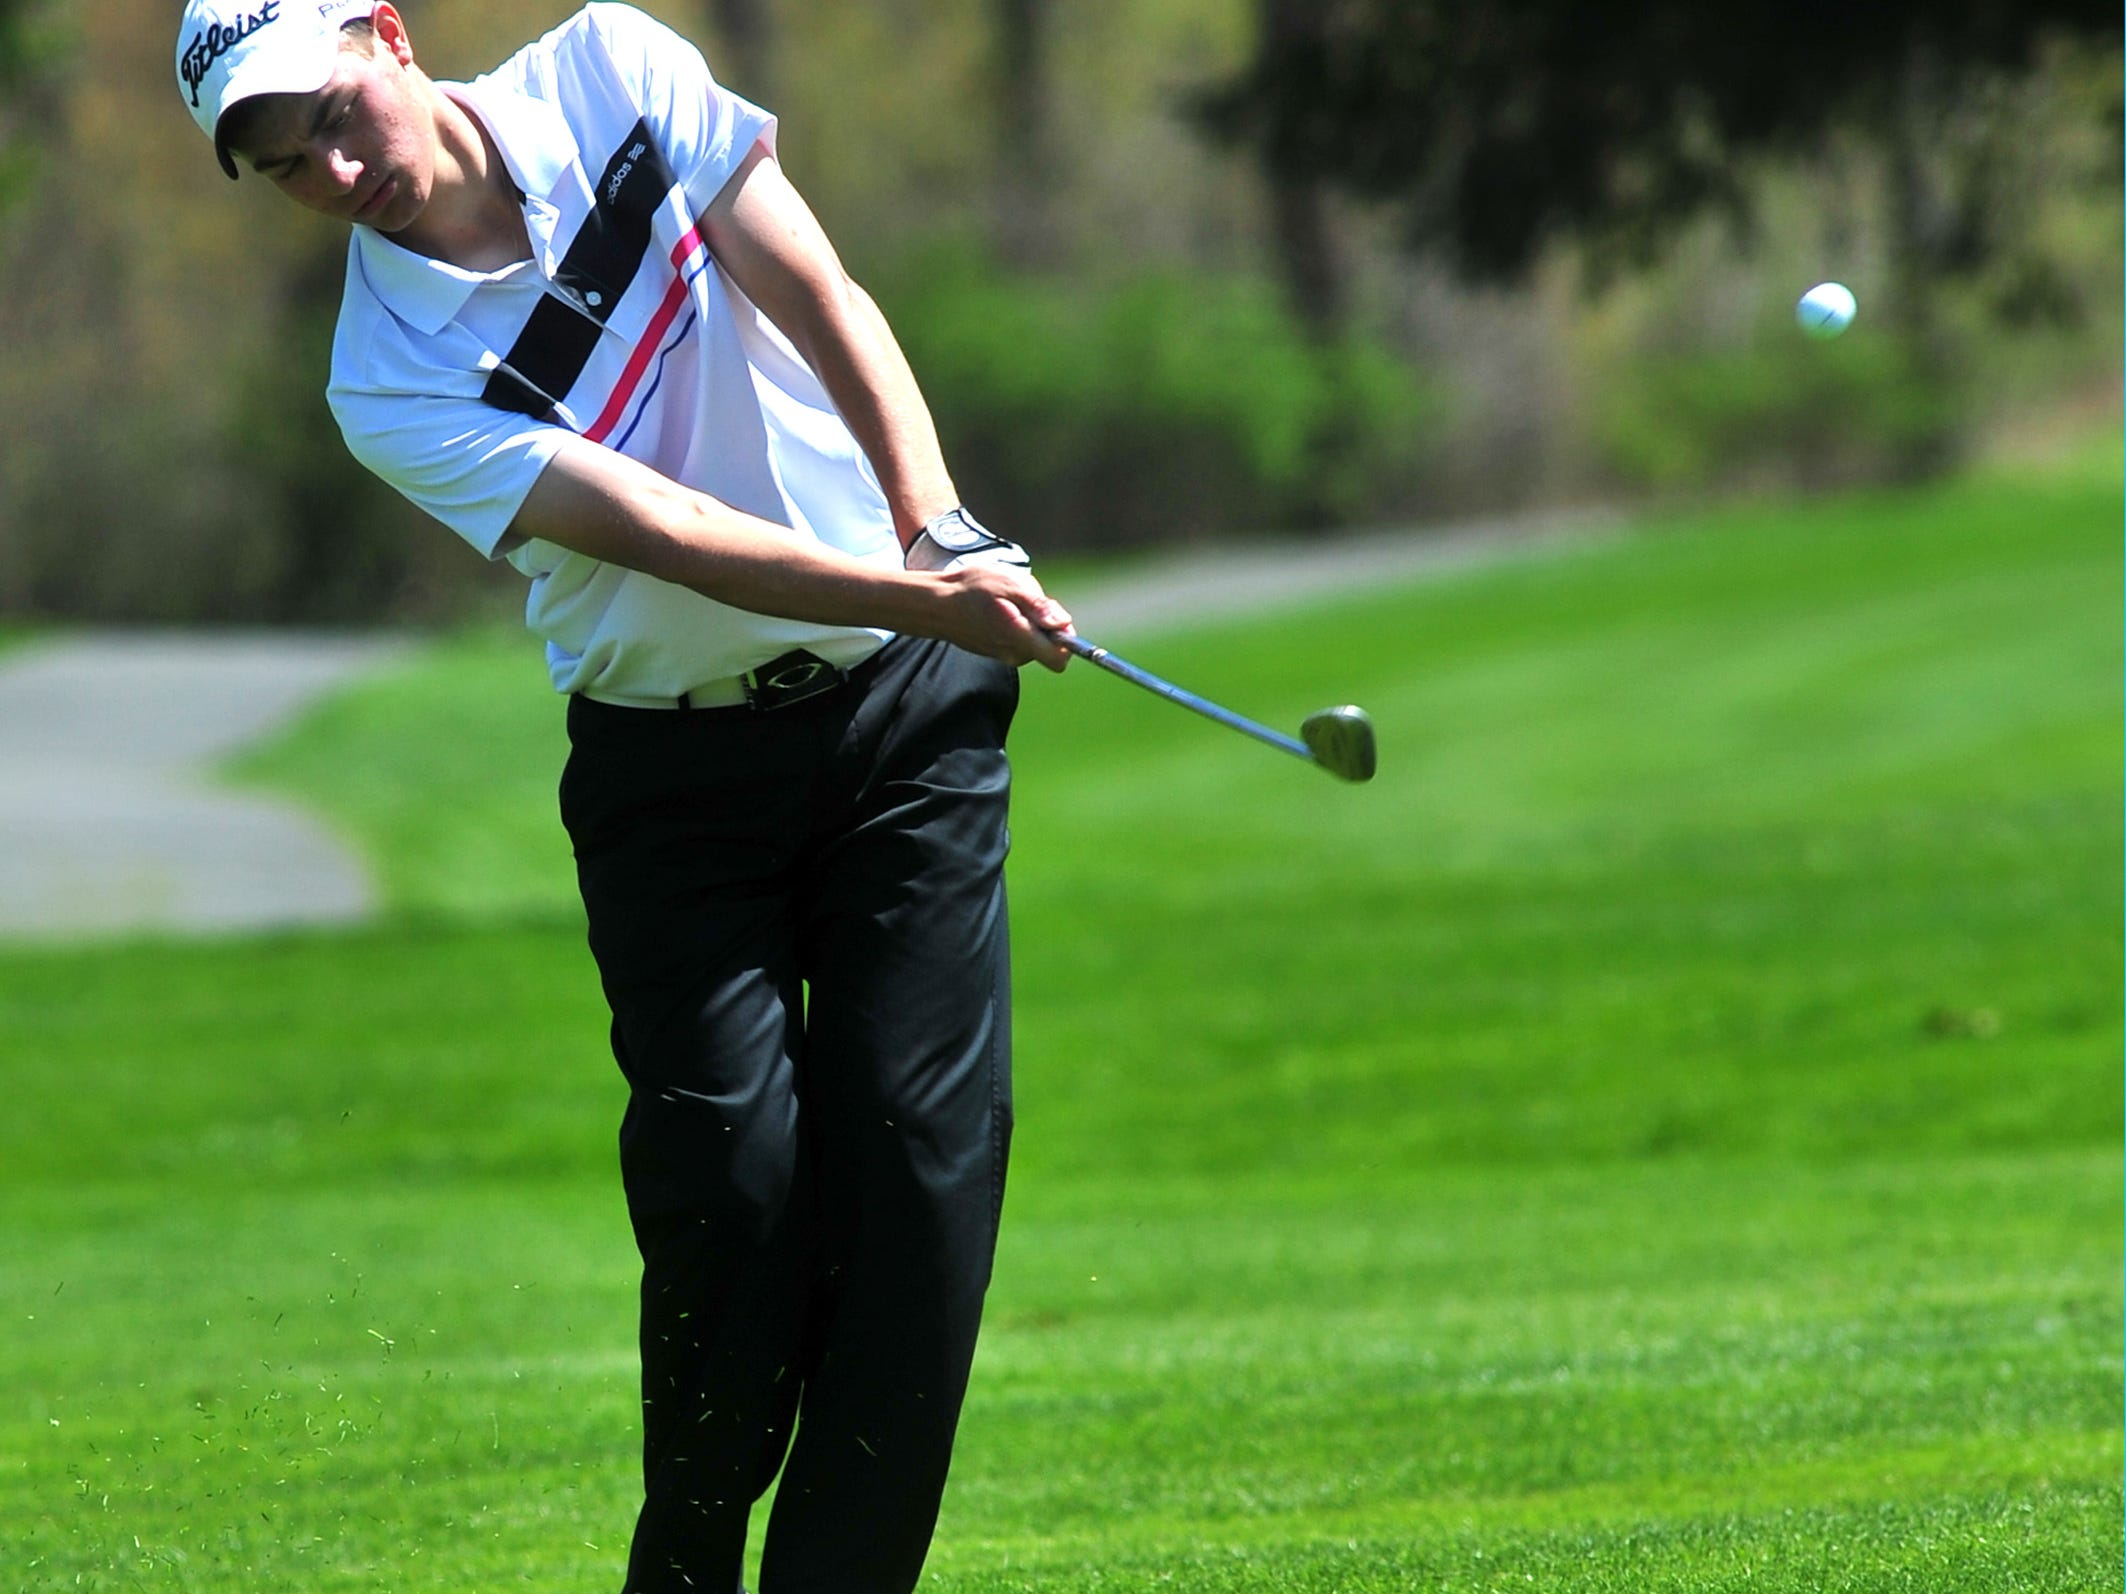 Tommy Hayes of West Morris drives on the 18th fairway at the Morris County Tournament.